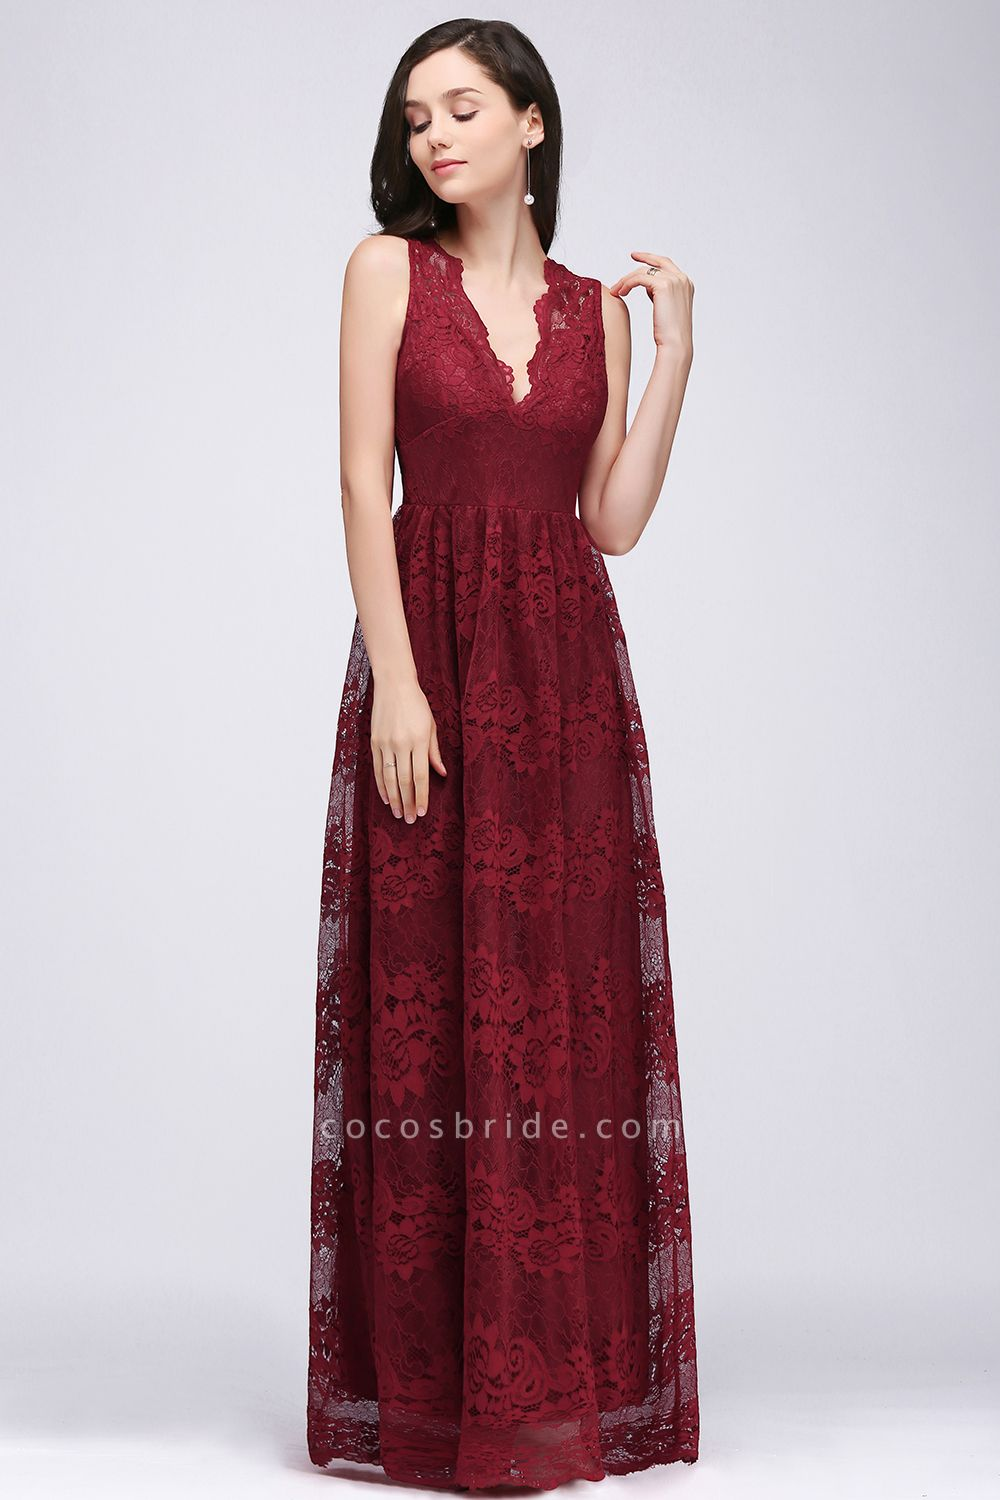 A-Line Lace Deep-V-Neck Sleeveless Floor-Length Bridesmaid Dresses